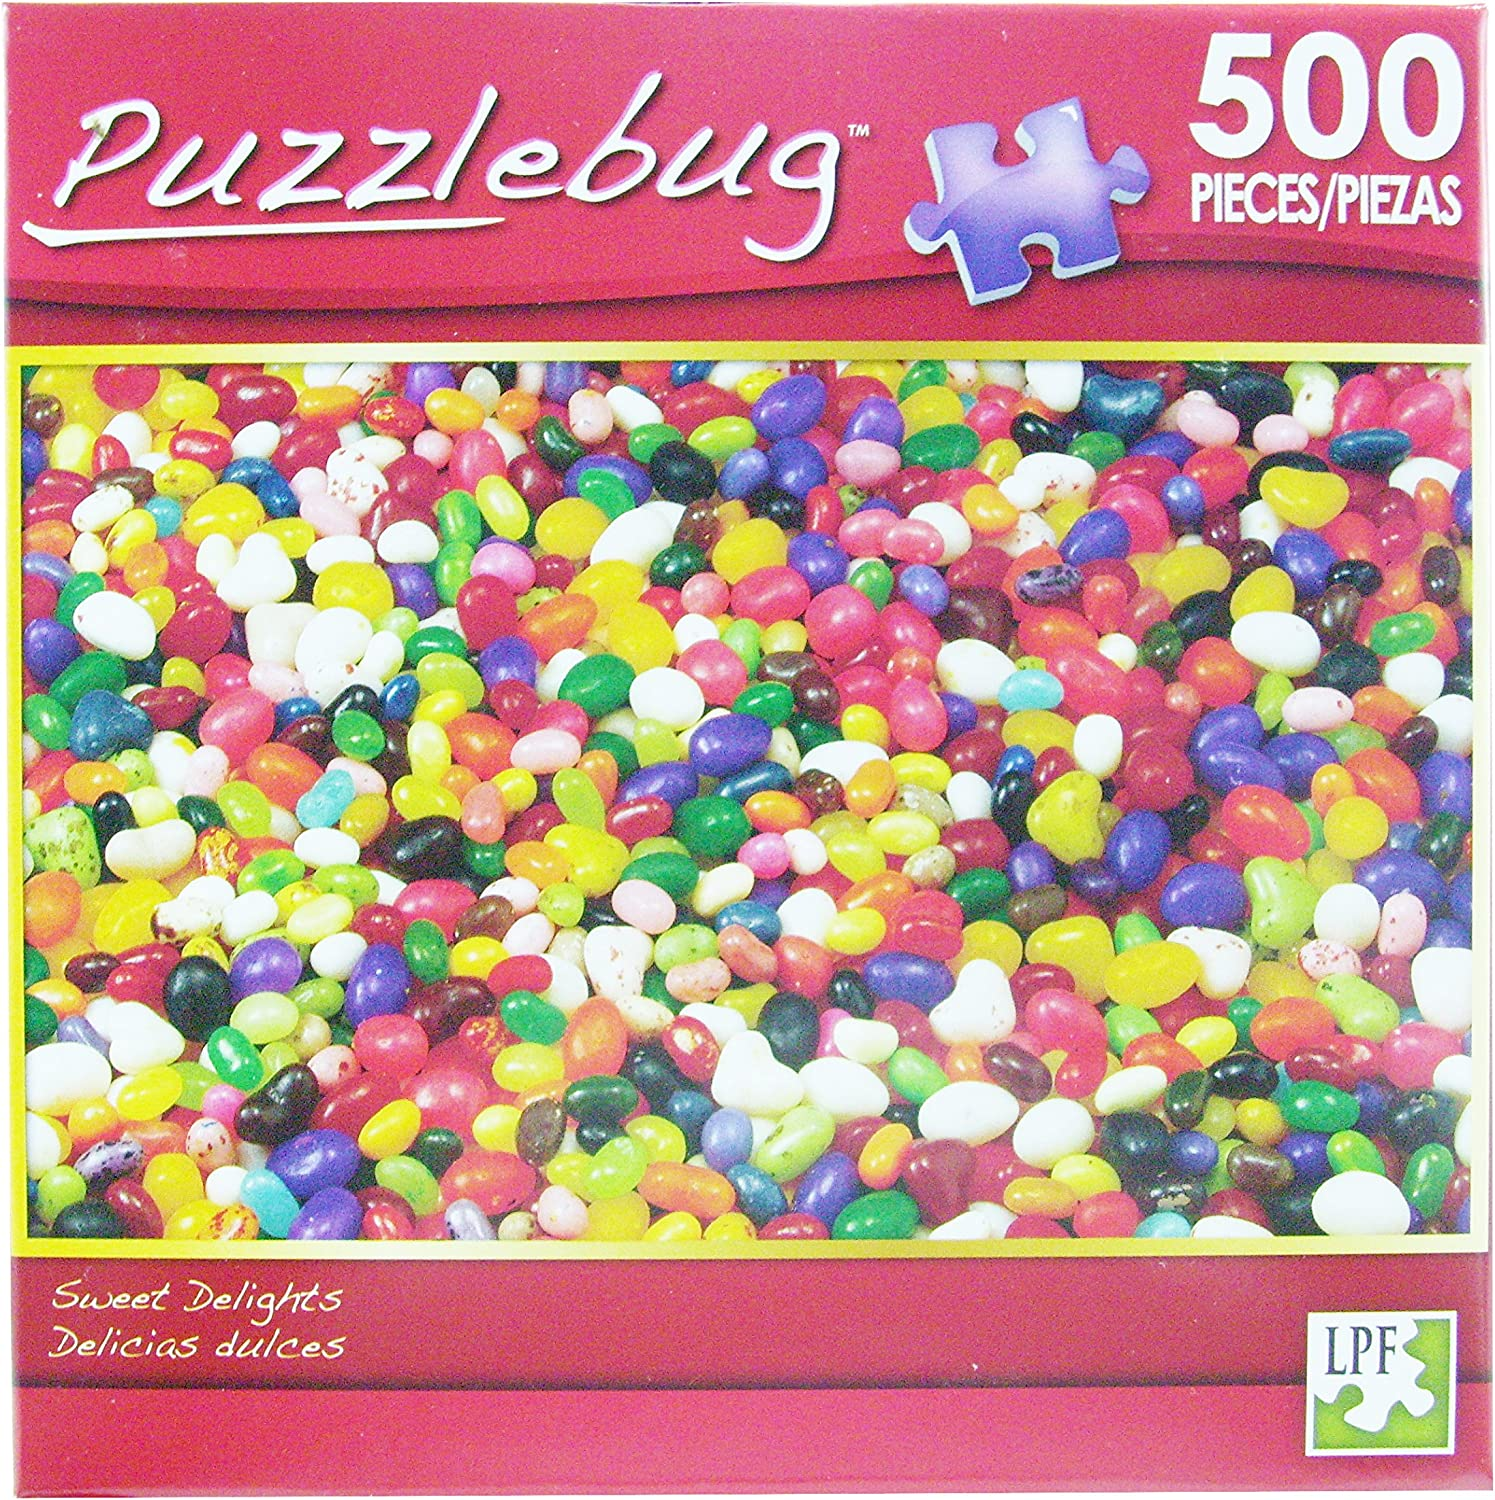 PuzzleBug 500 Piece Puzzle  Sweet Delights by Puzzlebug